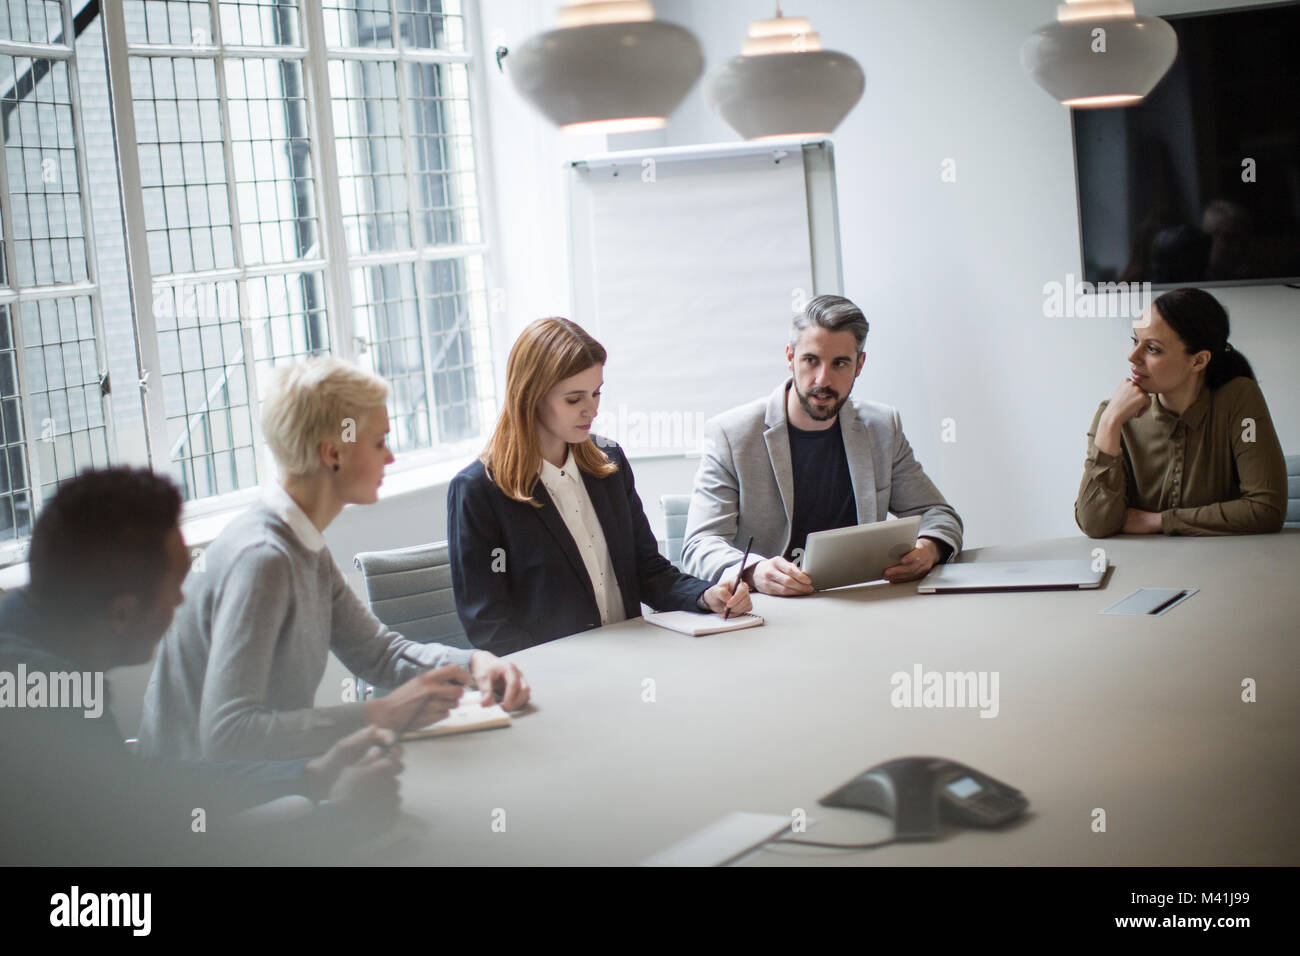 Male business executive leading a meeting Stock Photo